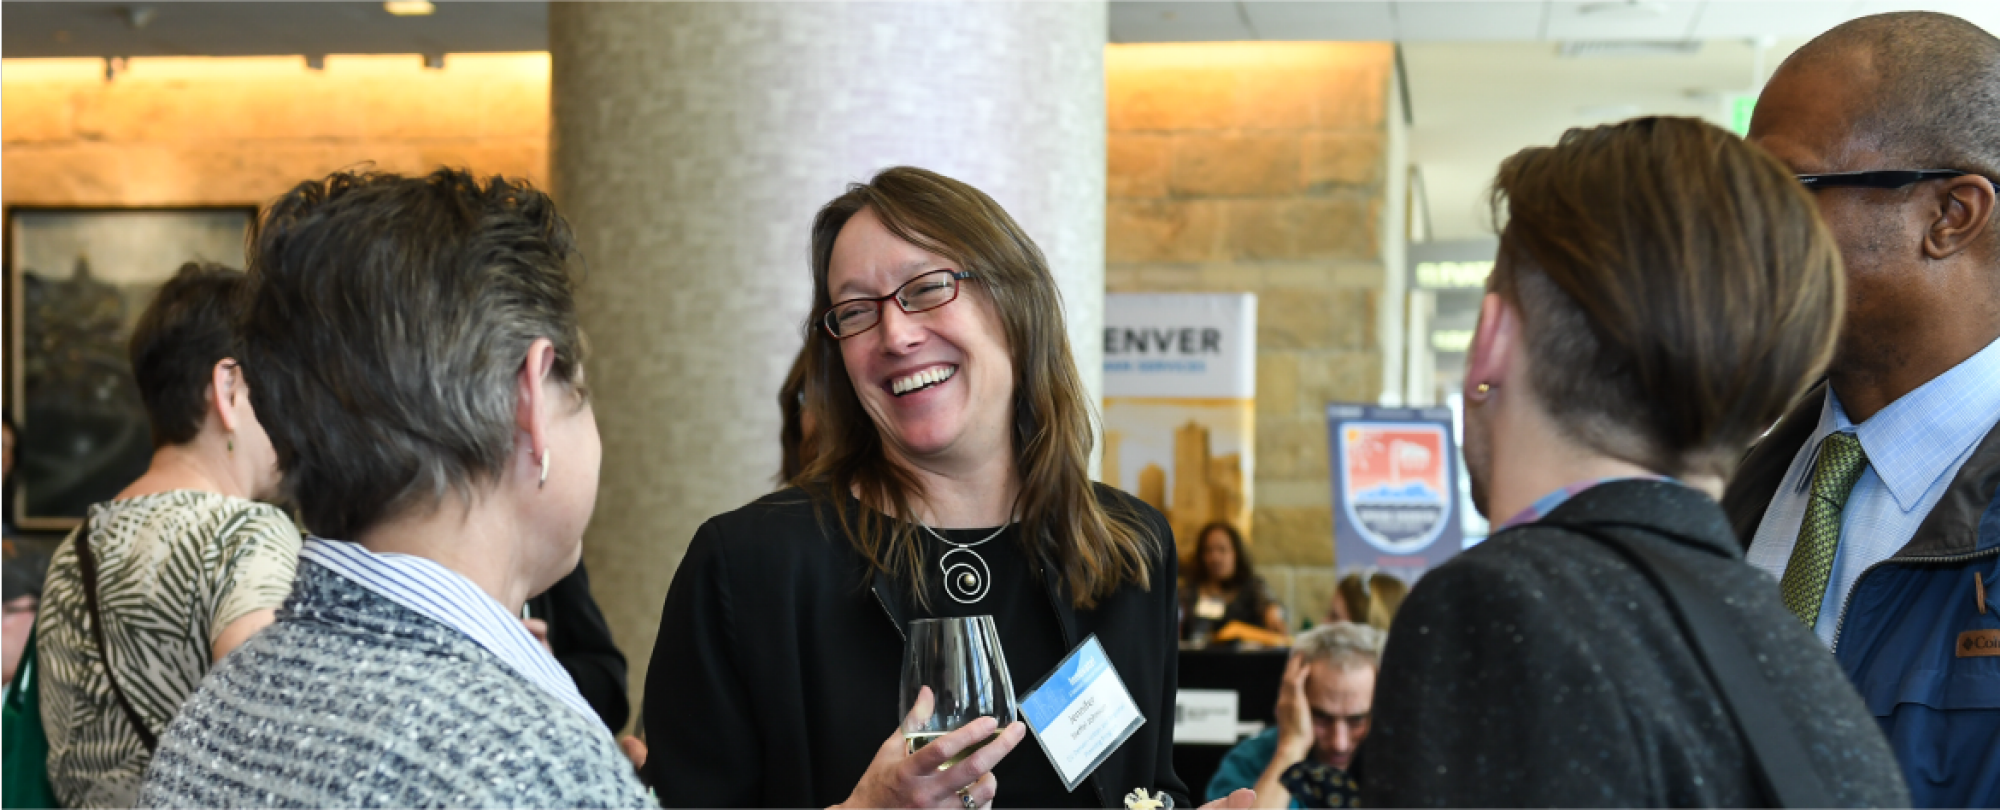 2019 Denver housing Forum Attendees socializing during the social networking event